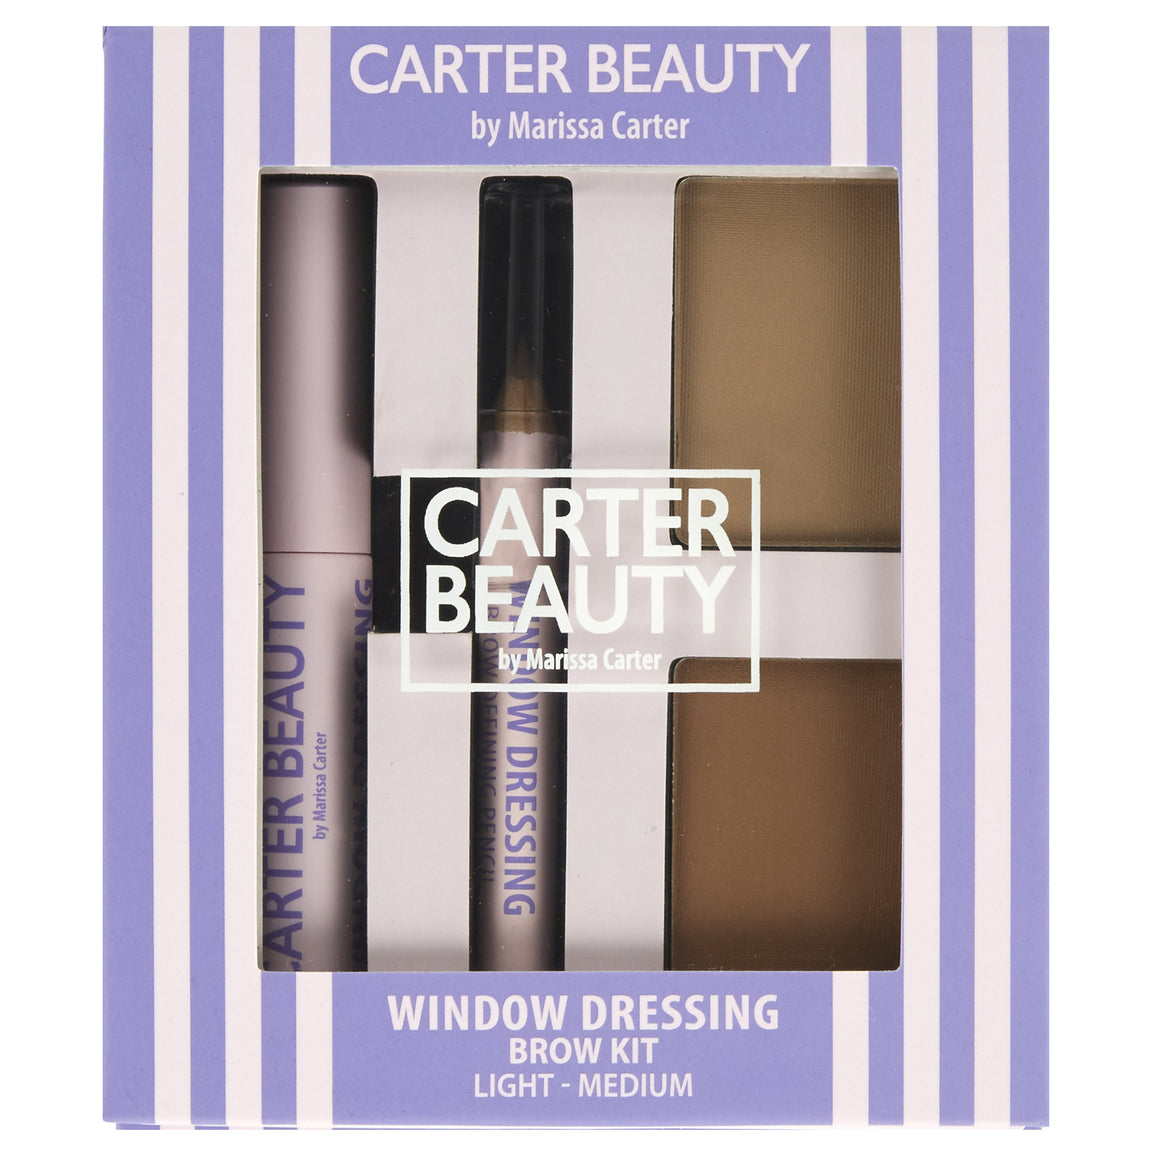 Window Dressing Brow Kit – Light to Medium